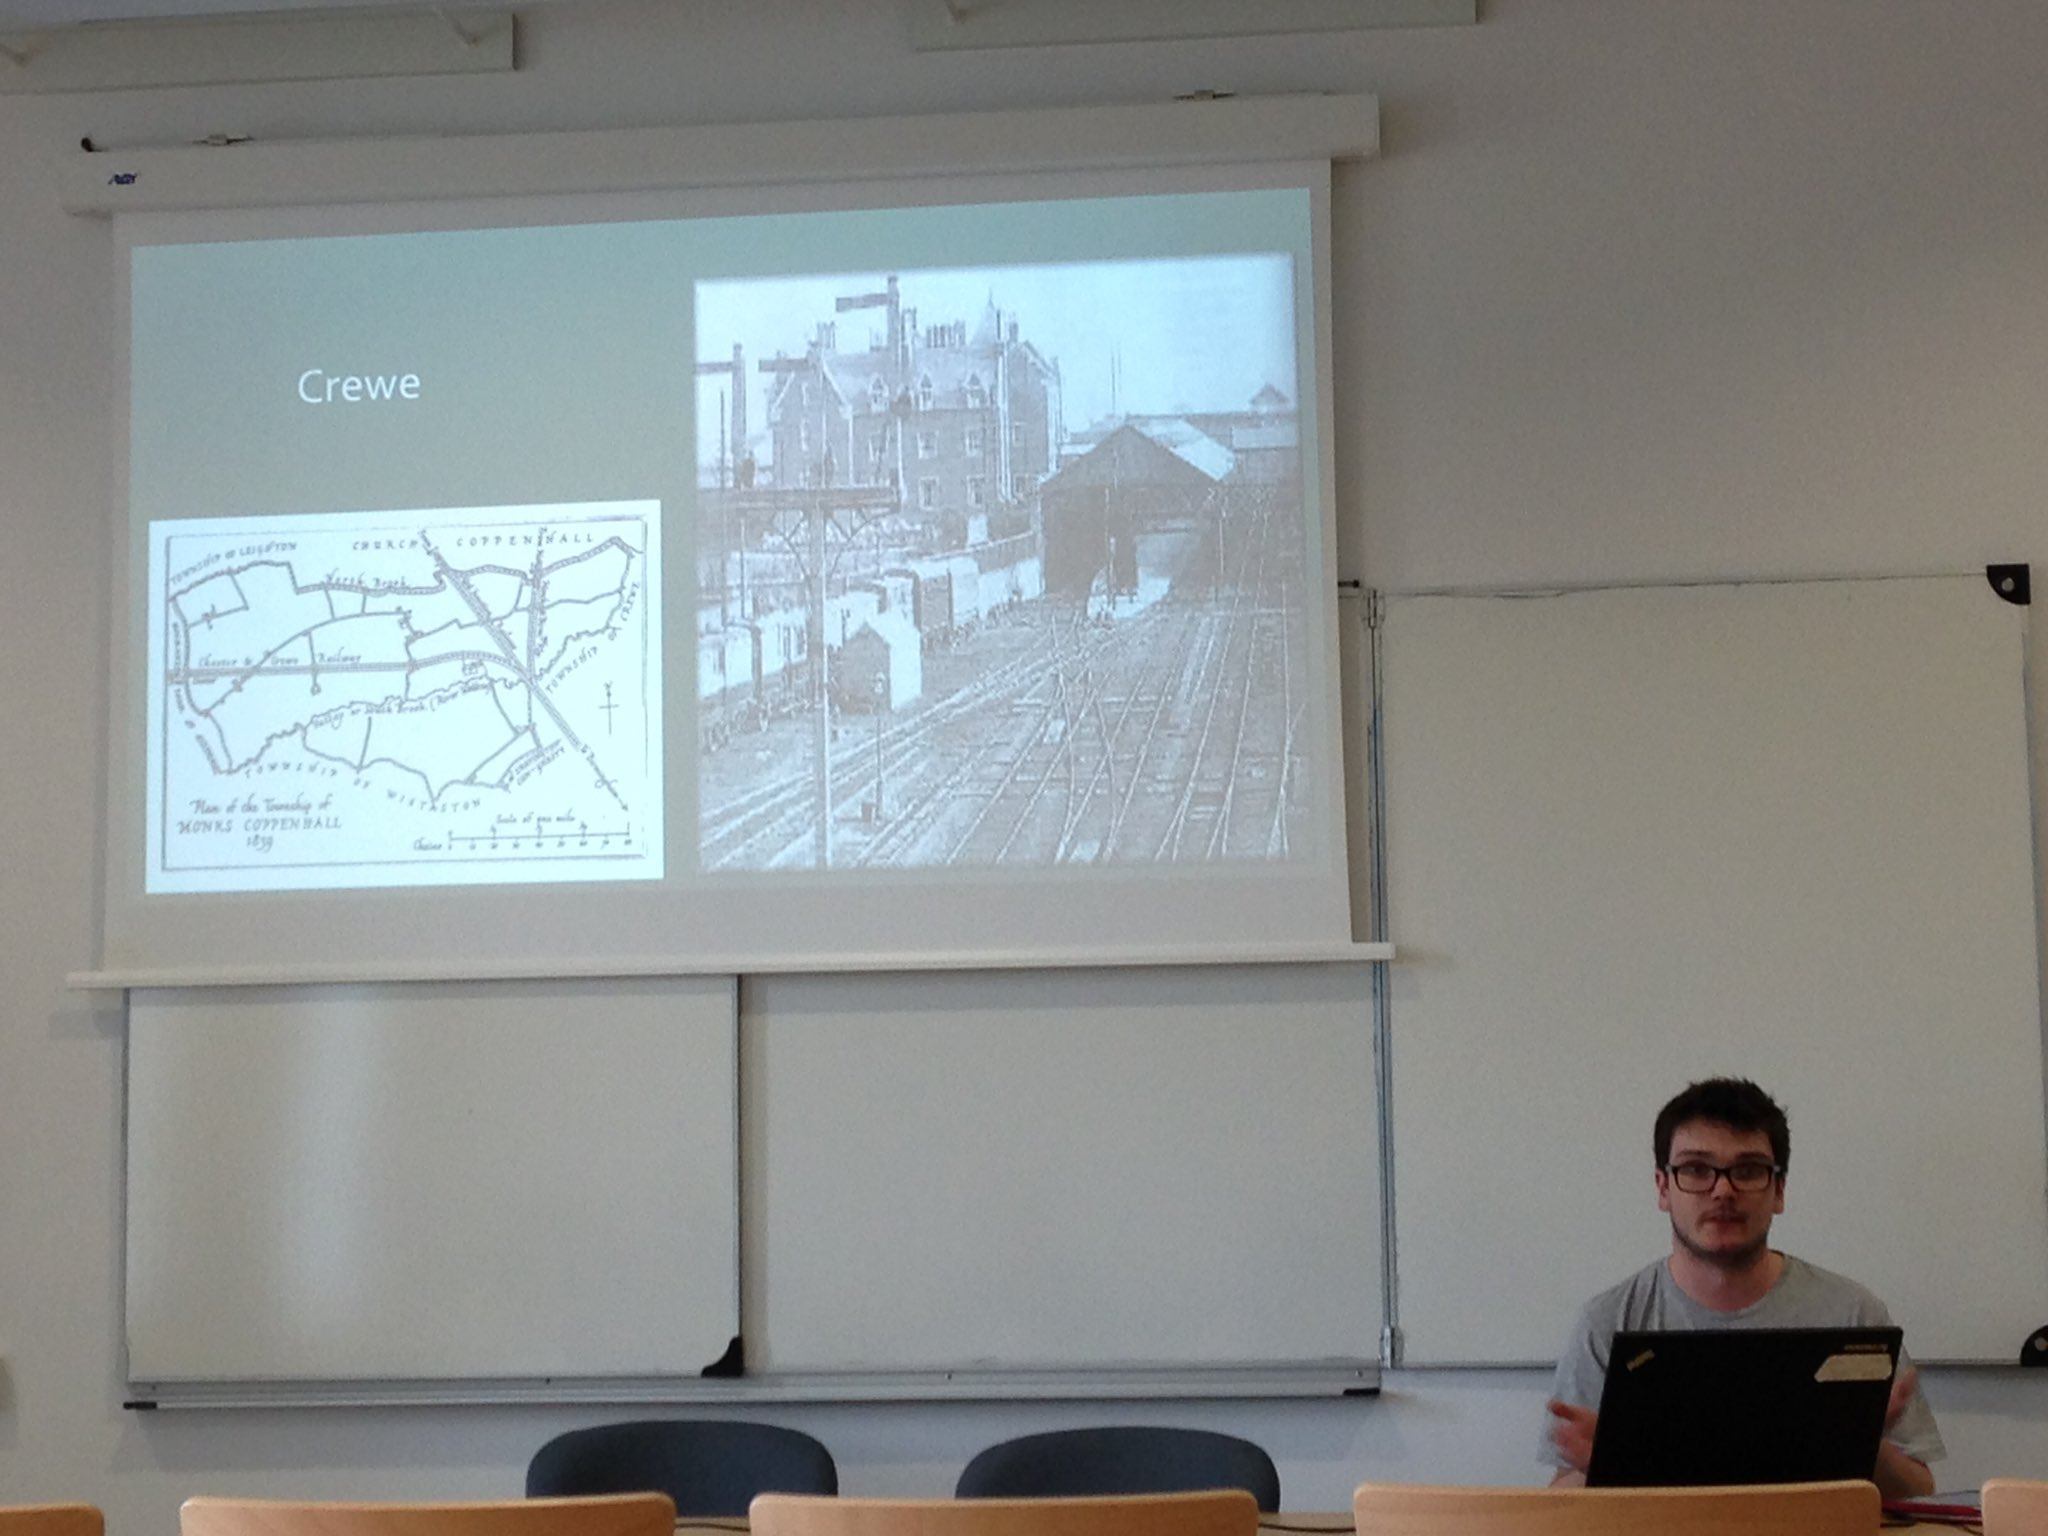 @LiamJordanDyer presenting his work on the middle class employee & the development of sport in CREWE at #ISHPES2016 https://t.co/gAPsTgDQMP